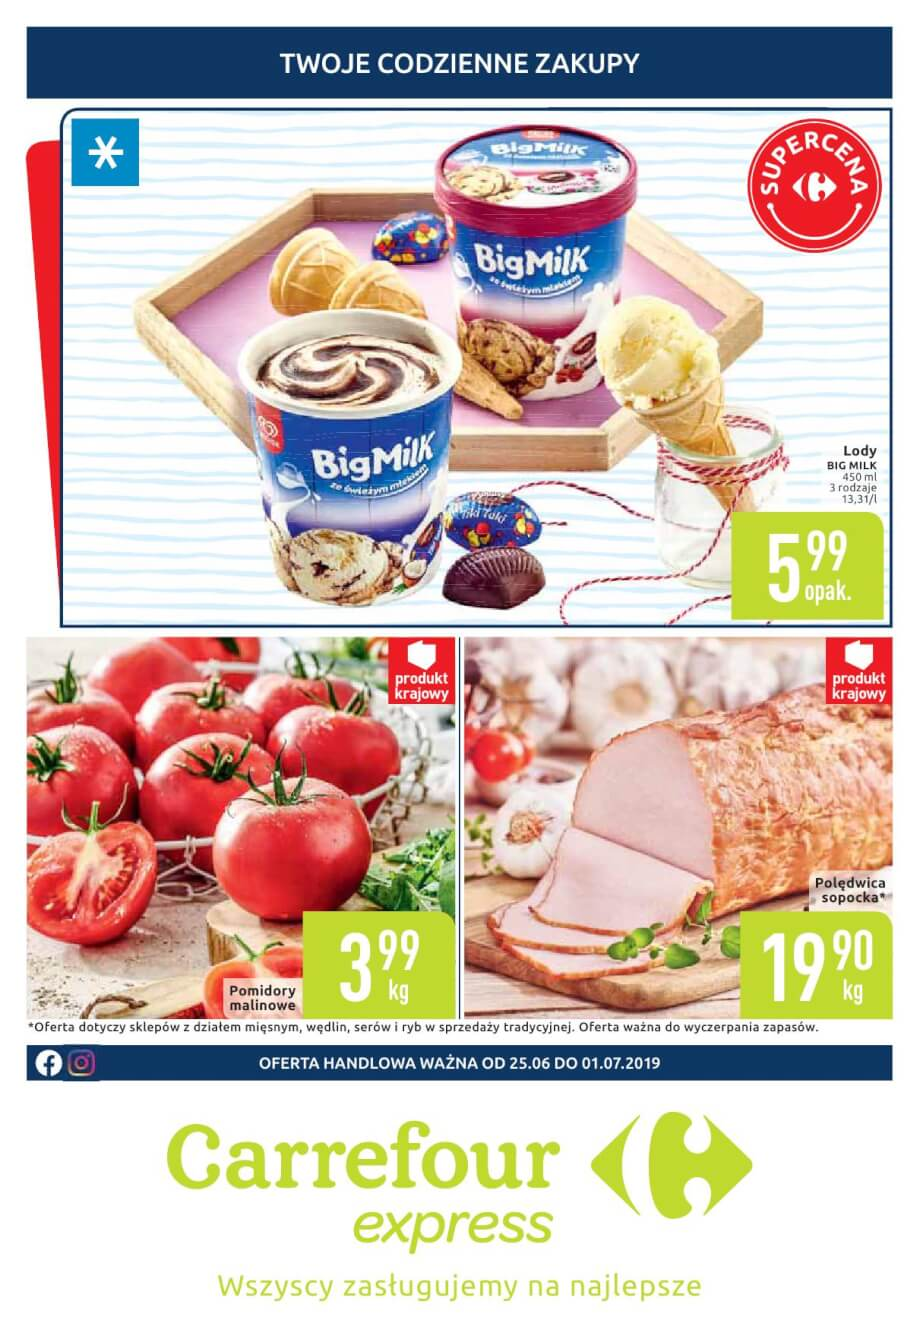 Carrefour Express, gazetka do 01.07.2019  s1